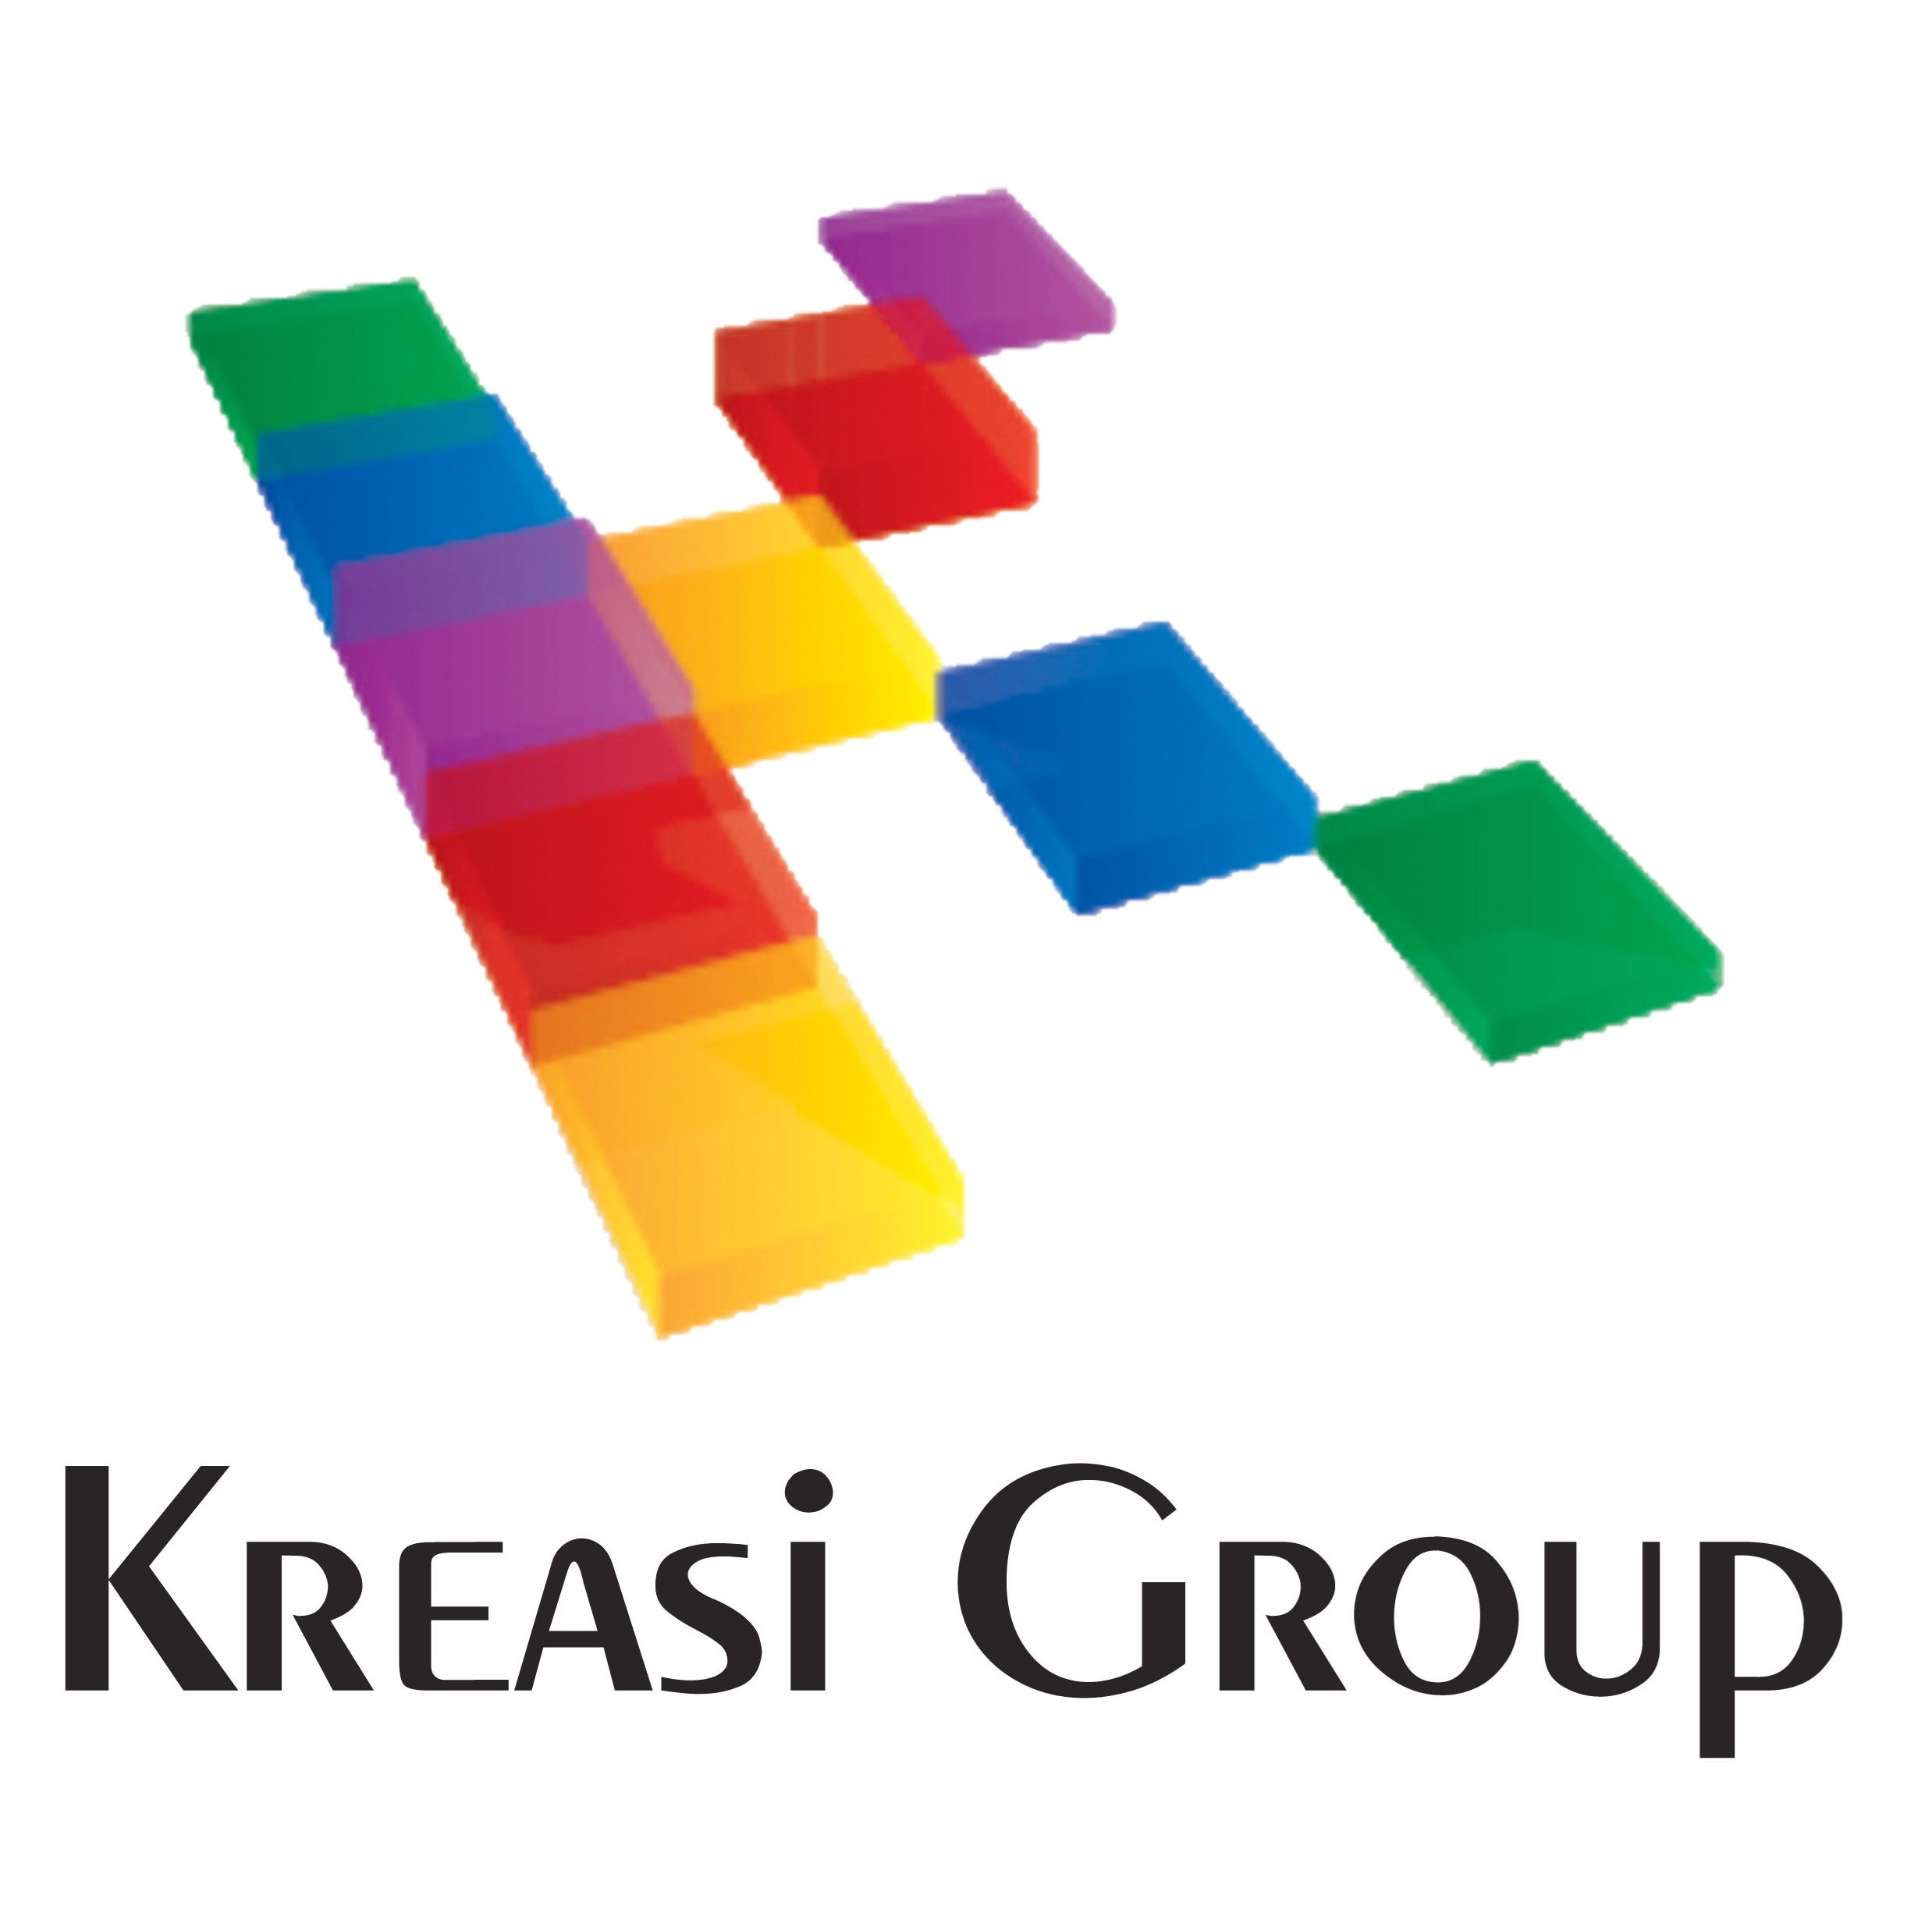 Kreasi Group